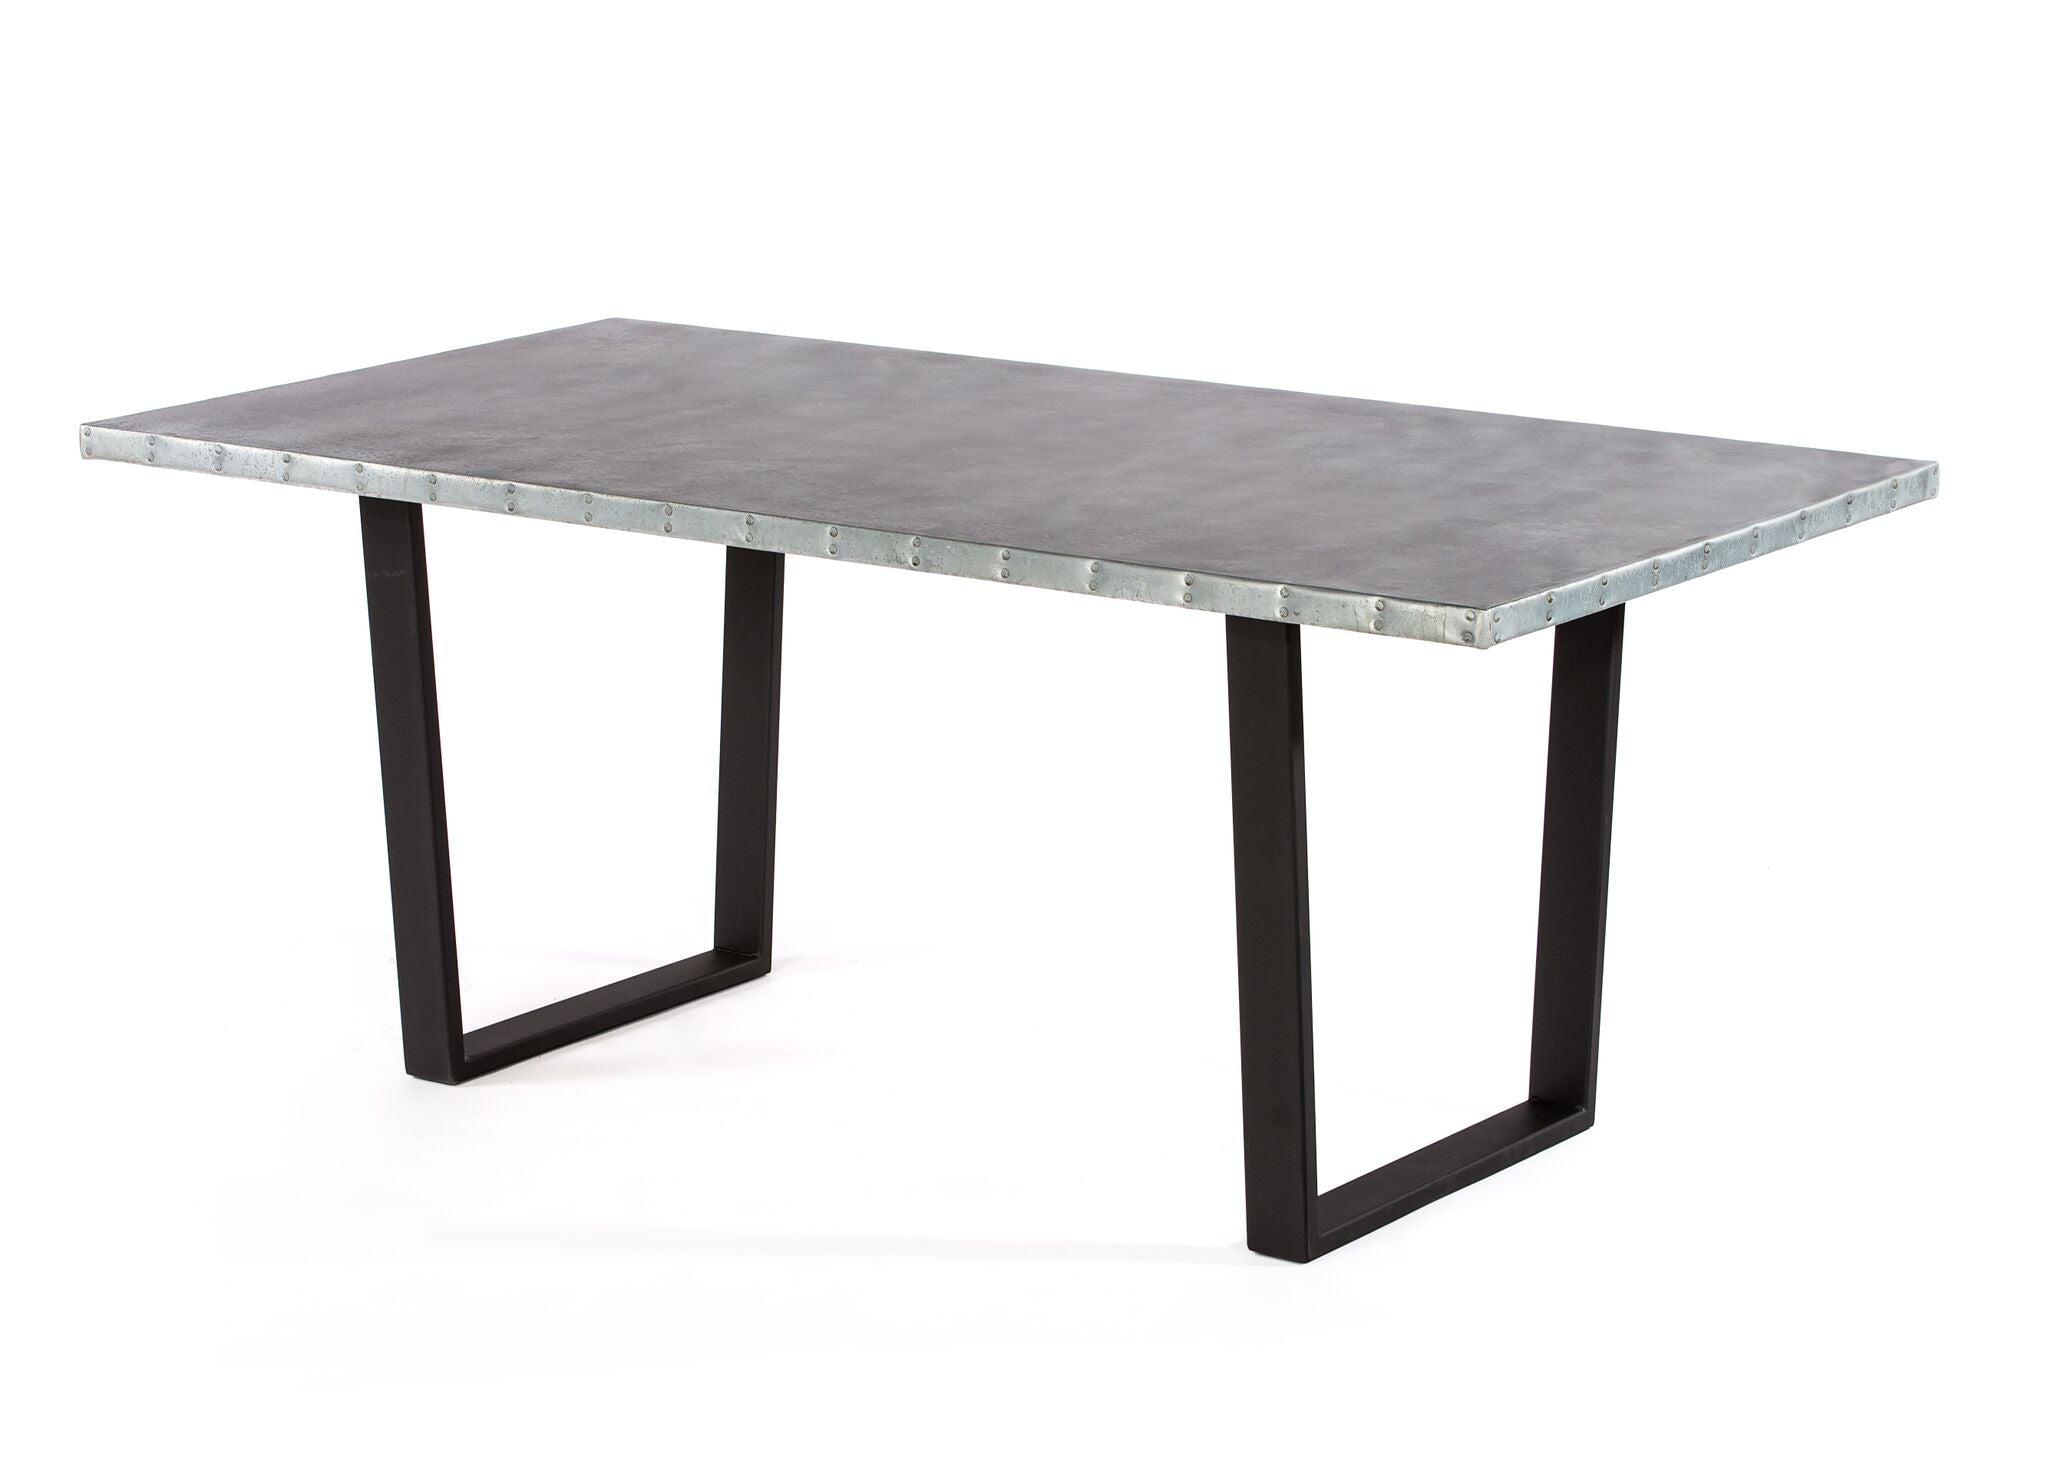 "Zinc Rectangular Table | Trenton Table | BLACKENED BRONZE | Antique White | 72""L 37""W 30""H 